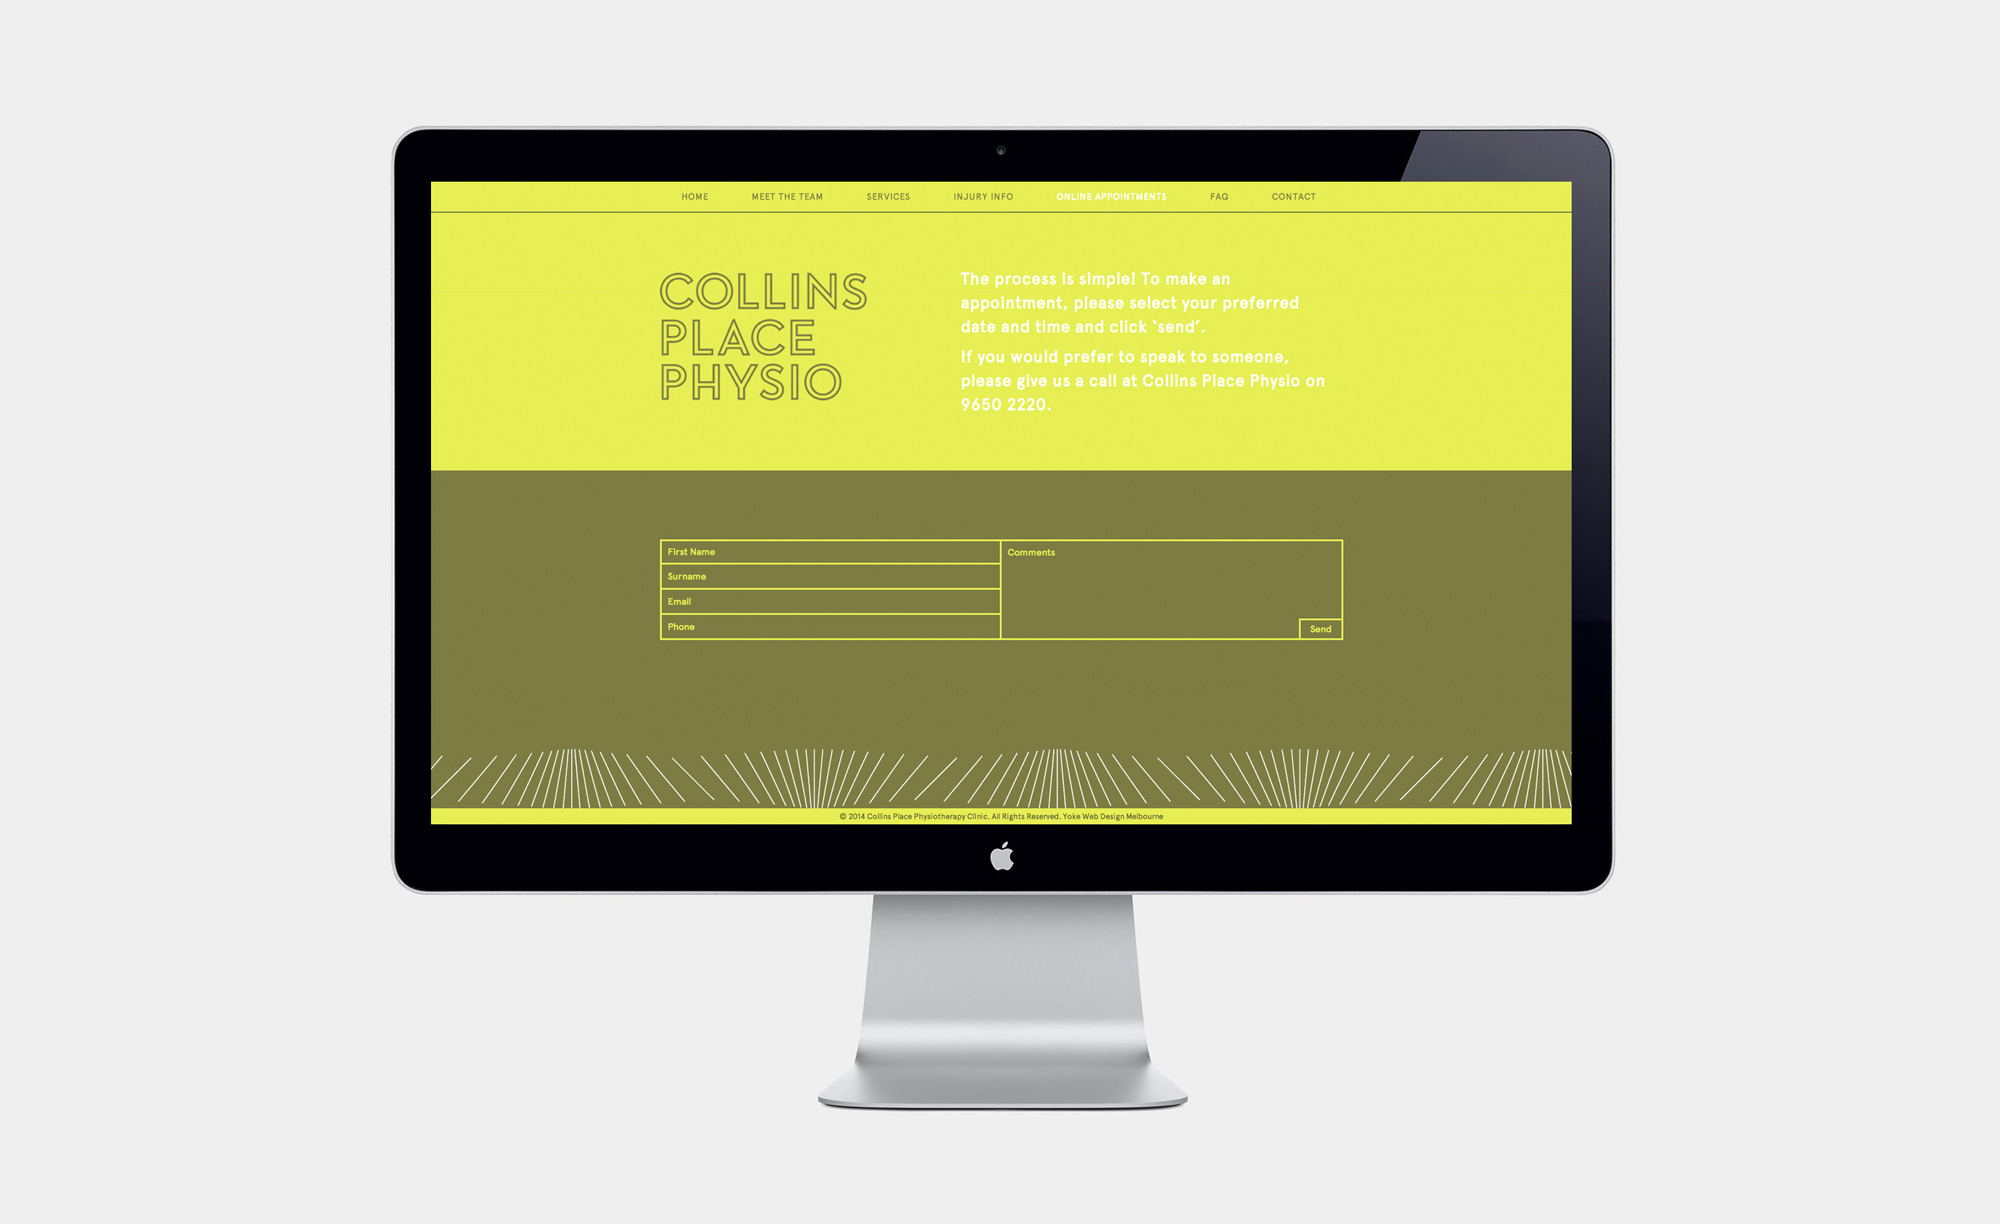 Collins Place Physio contact form